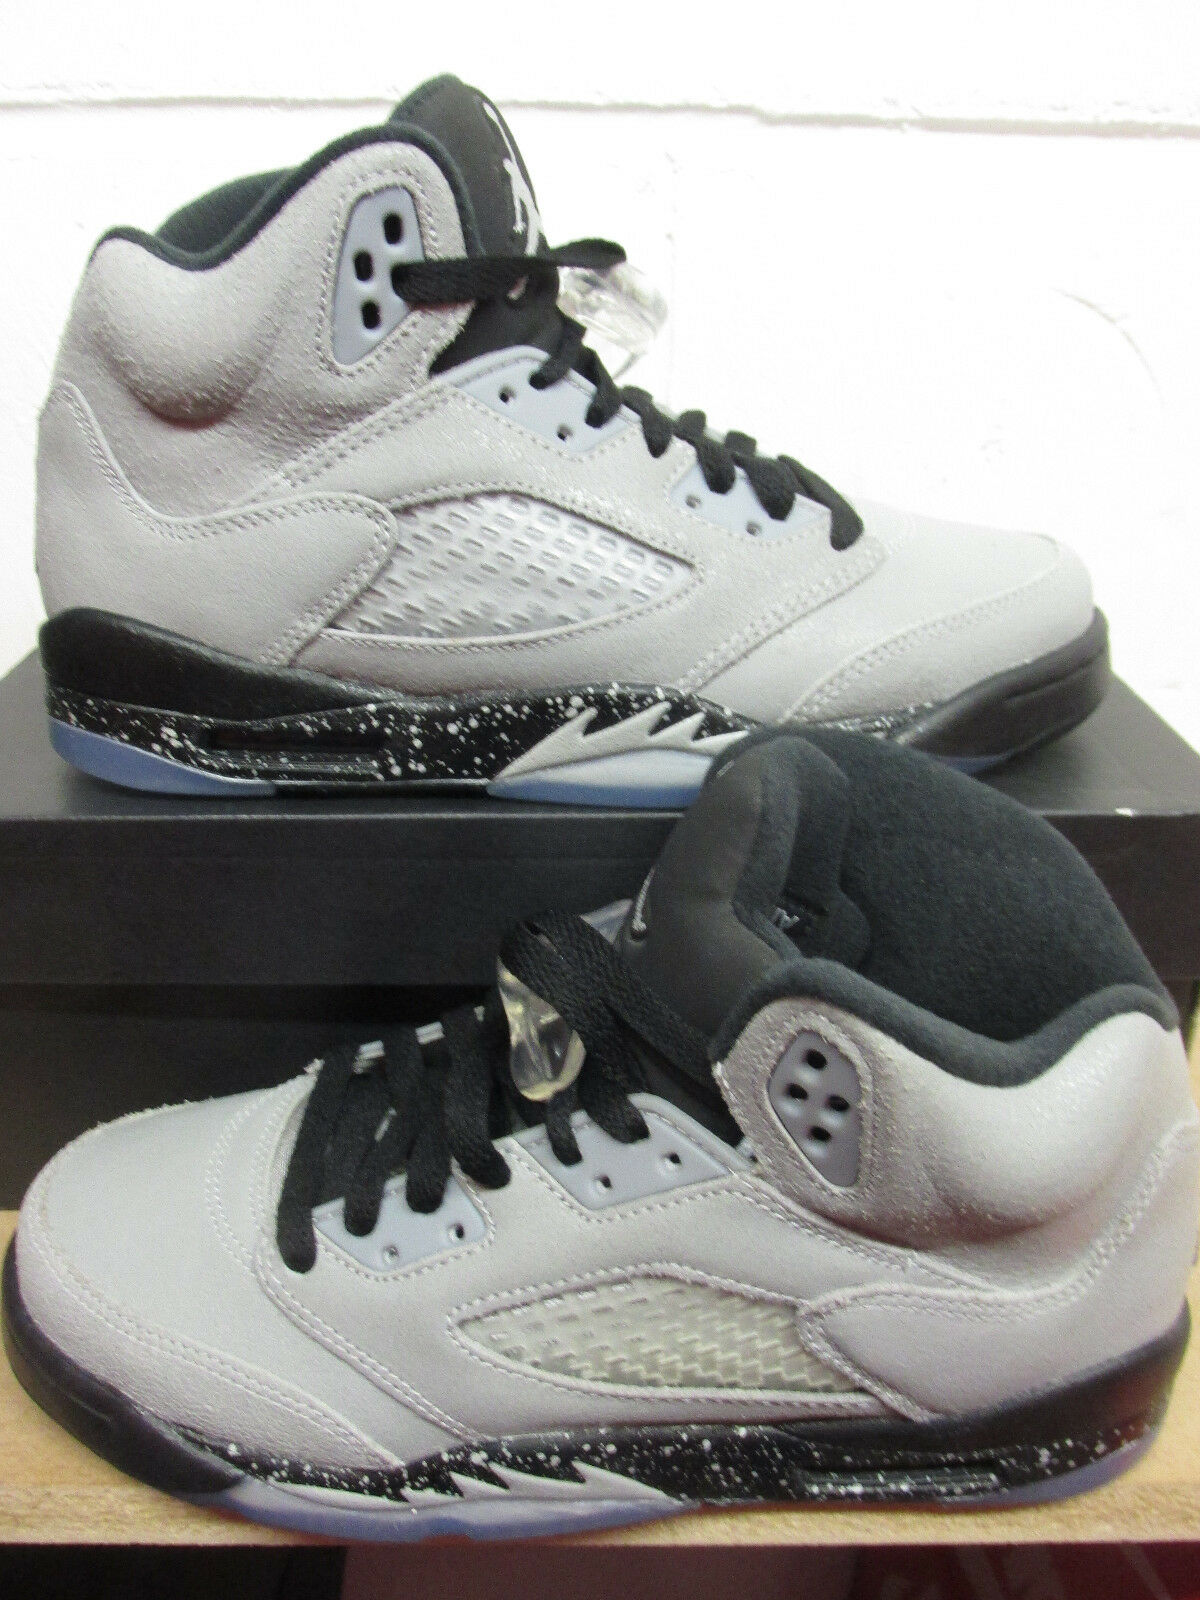 nike girls air jordan 5 retro Price reduction hi top trainers 440892 008 sneakers shoes The latest discount shoes for men and women